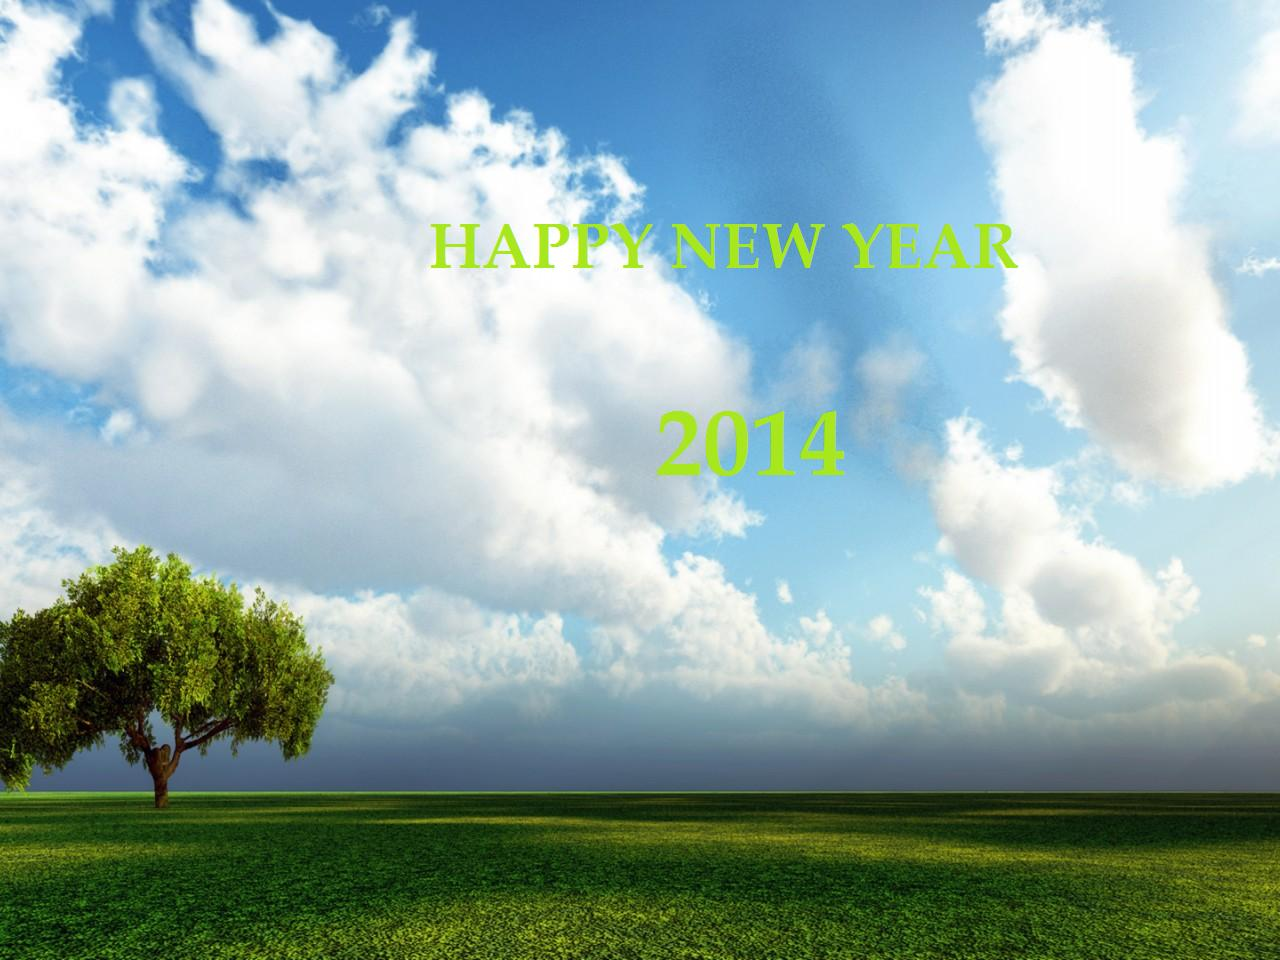 Welcome merry christmas and happy new year 2014 new year 2014 hd natural new year 2014 background natural 2014 wallpaper hd voltagebd Gallery